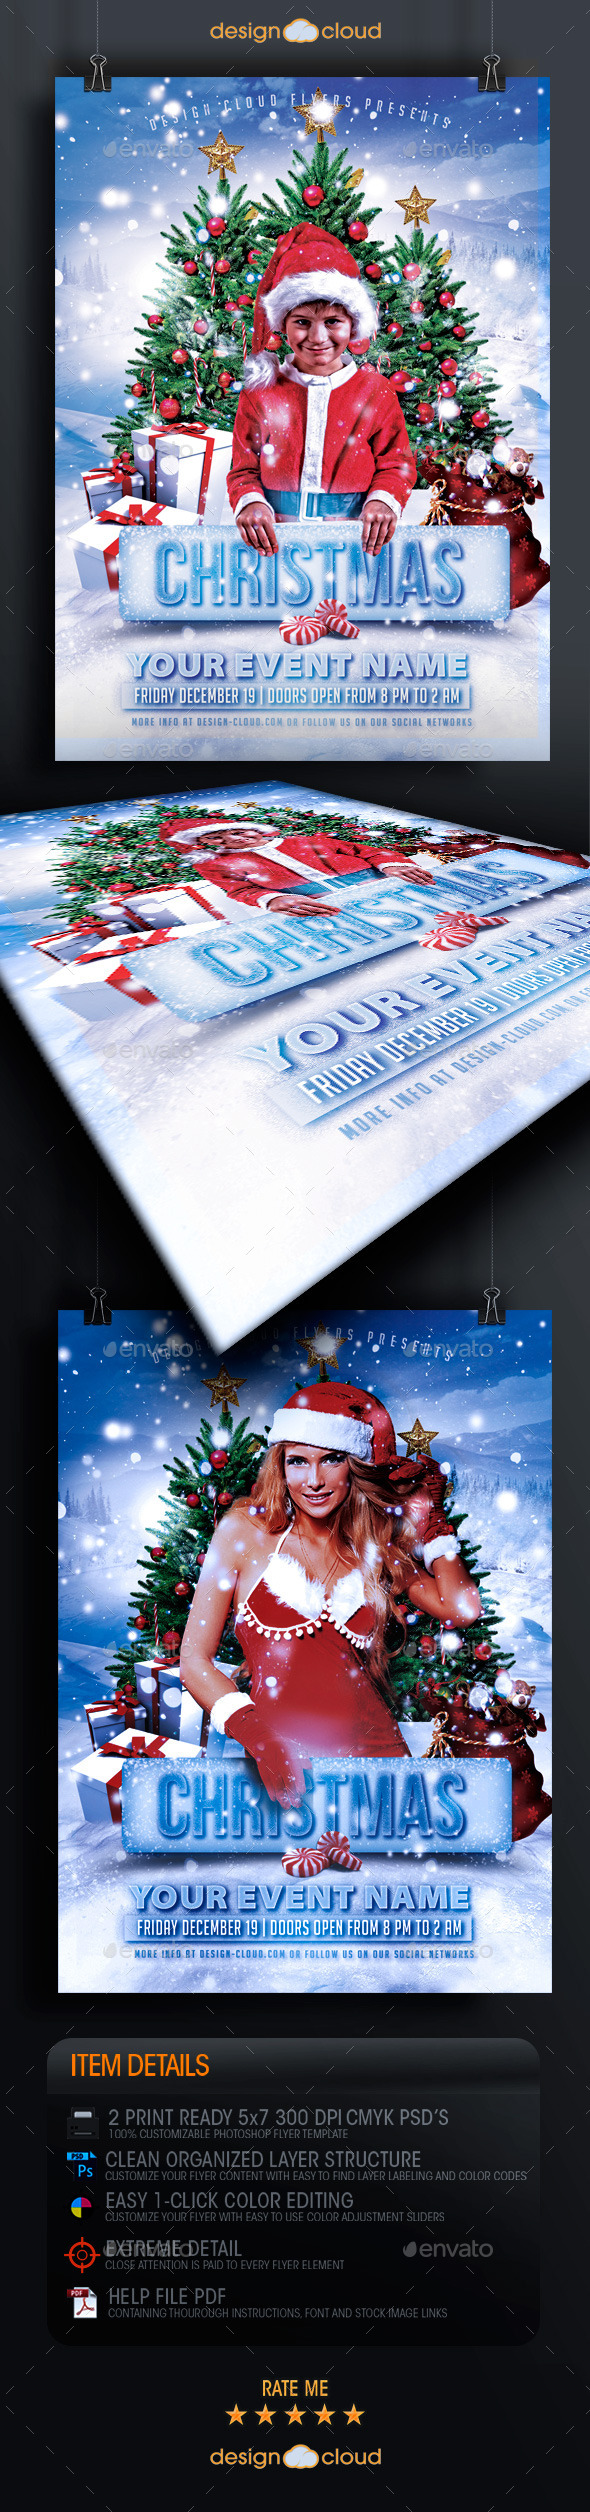 Christmas Party and Event Flyer Template - Holidays Events